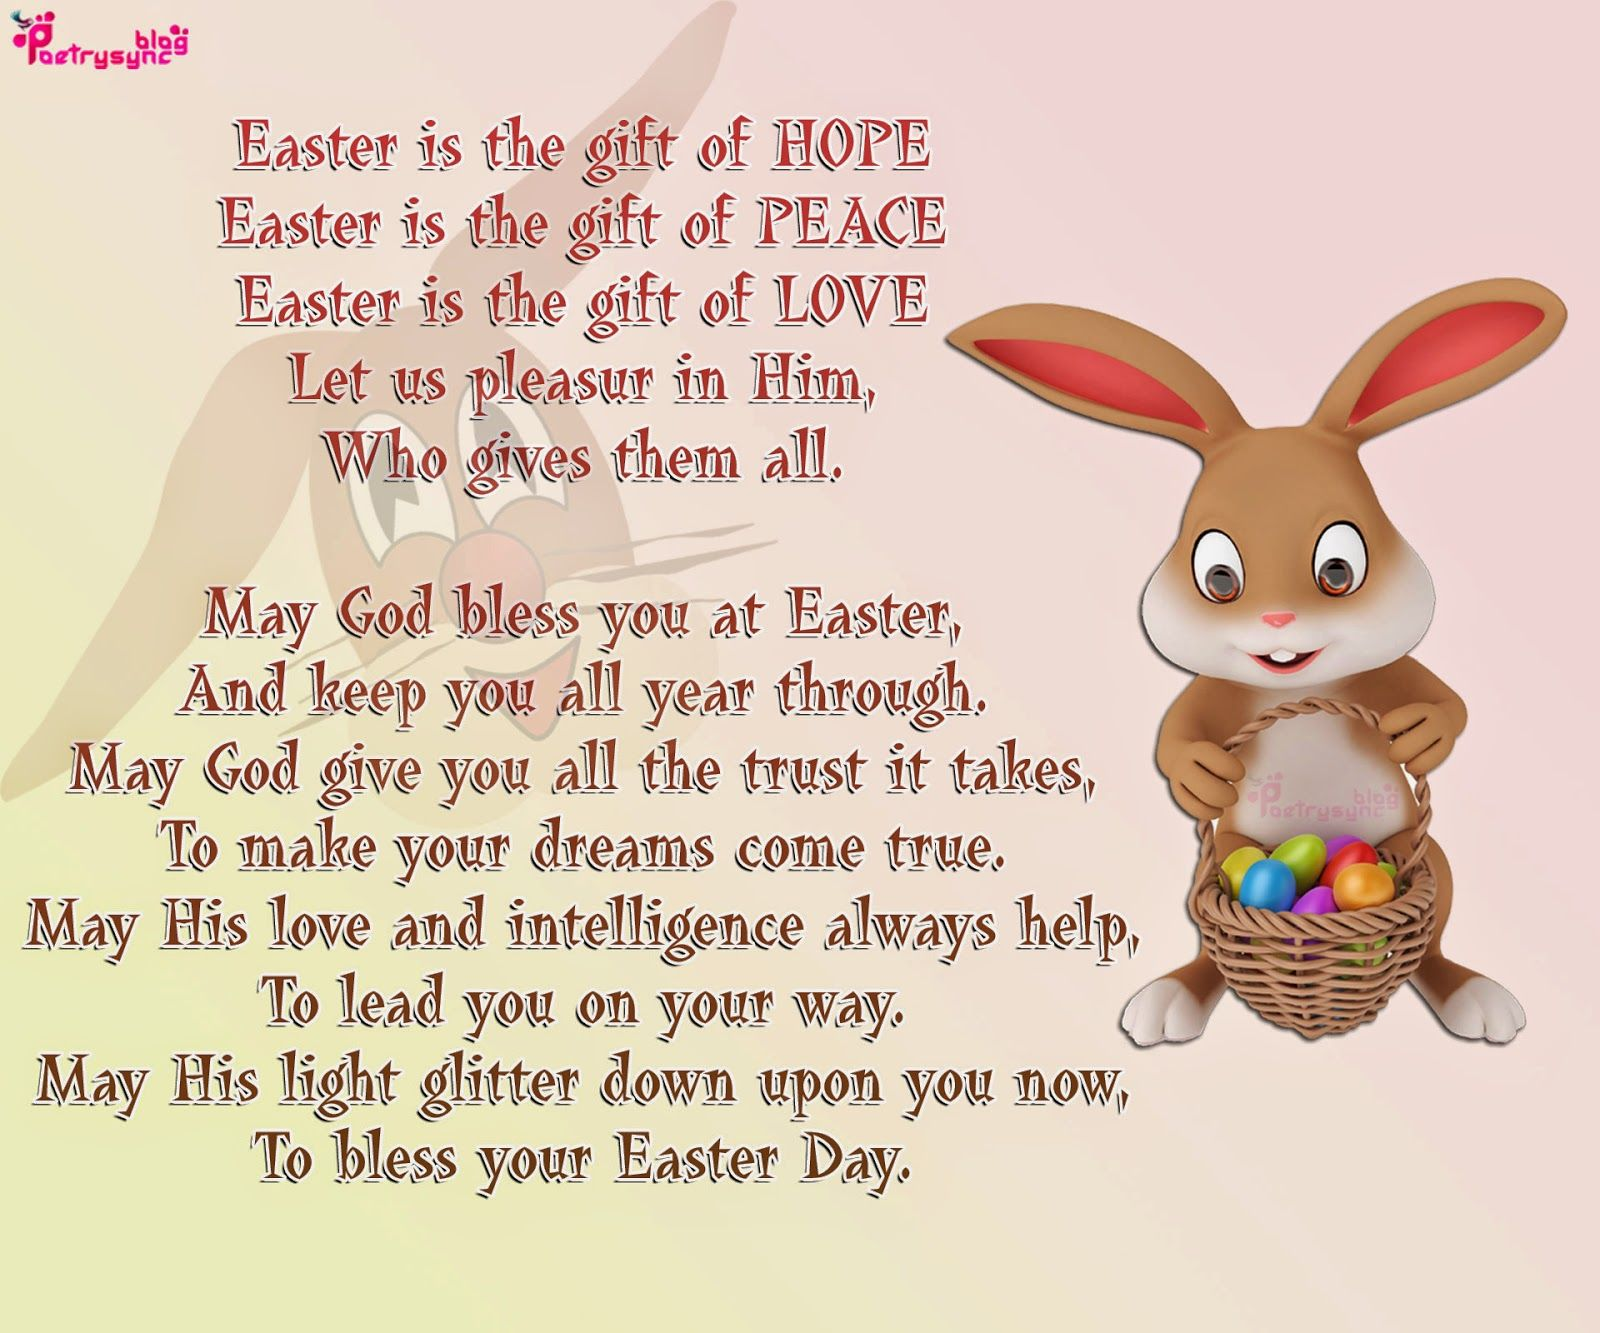 To bless your easter day pictures photos and images for facebook to bless your easter day negle Image collections